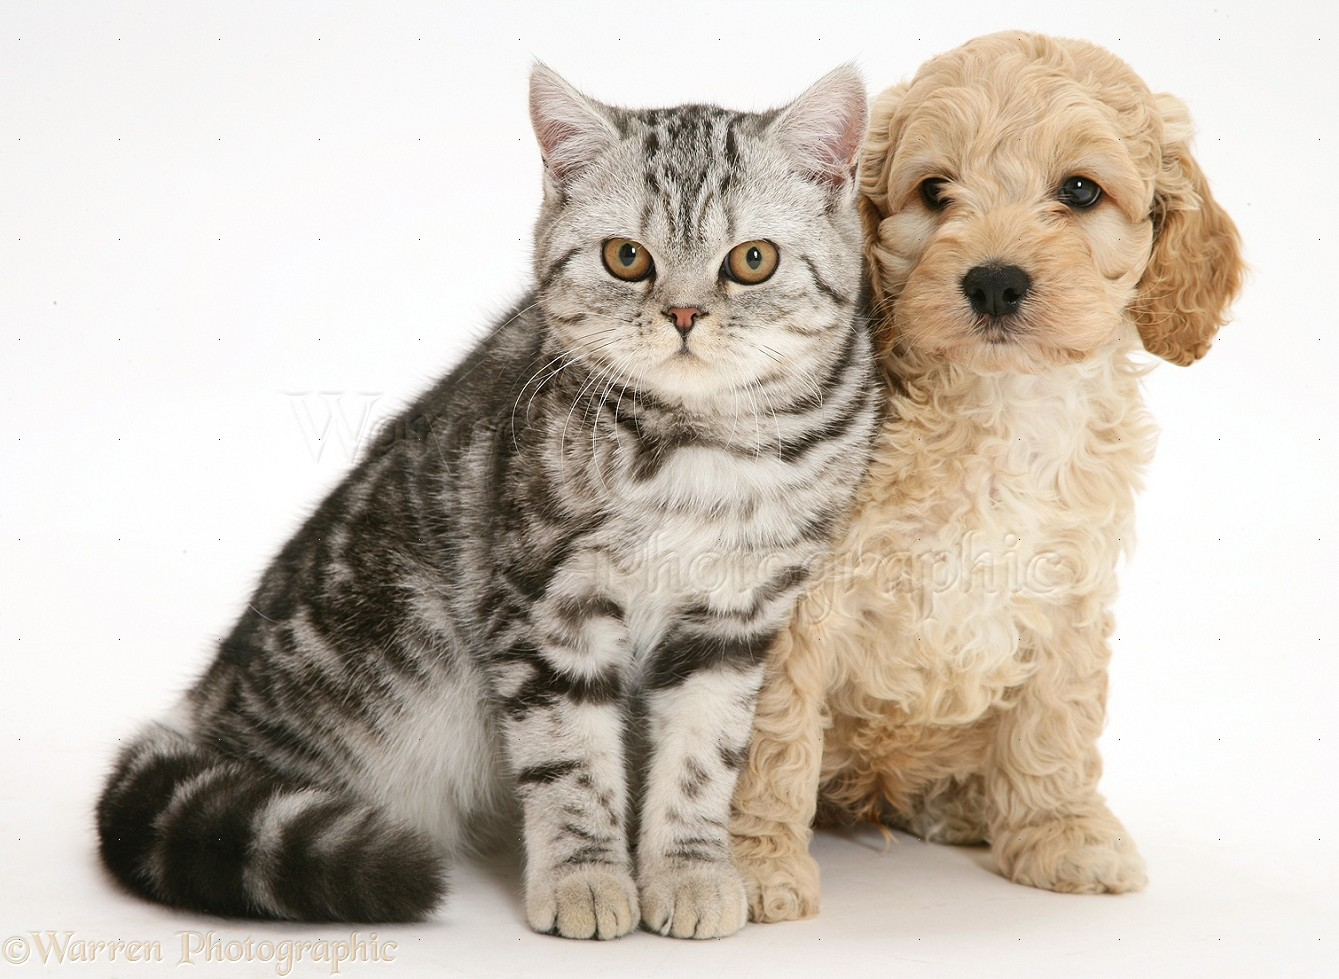 Pictures Cats And Dogs Together